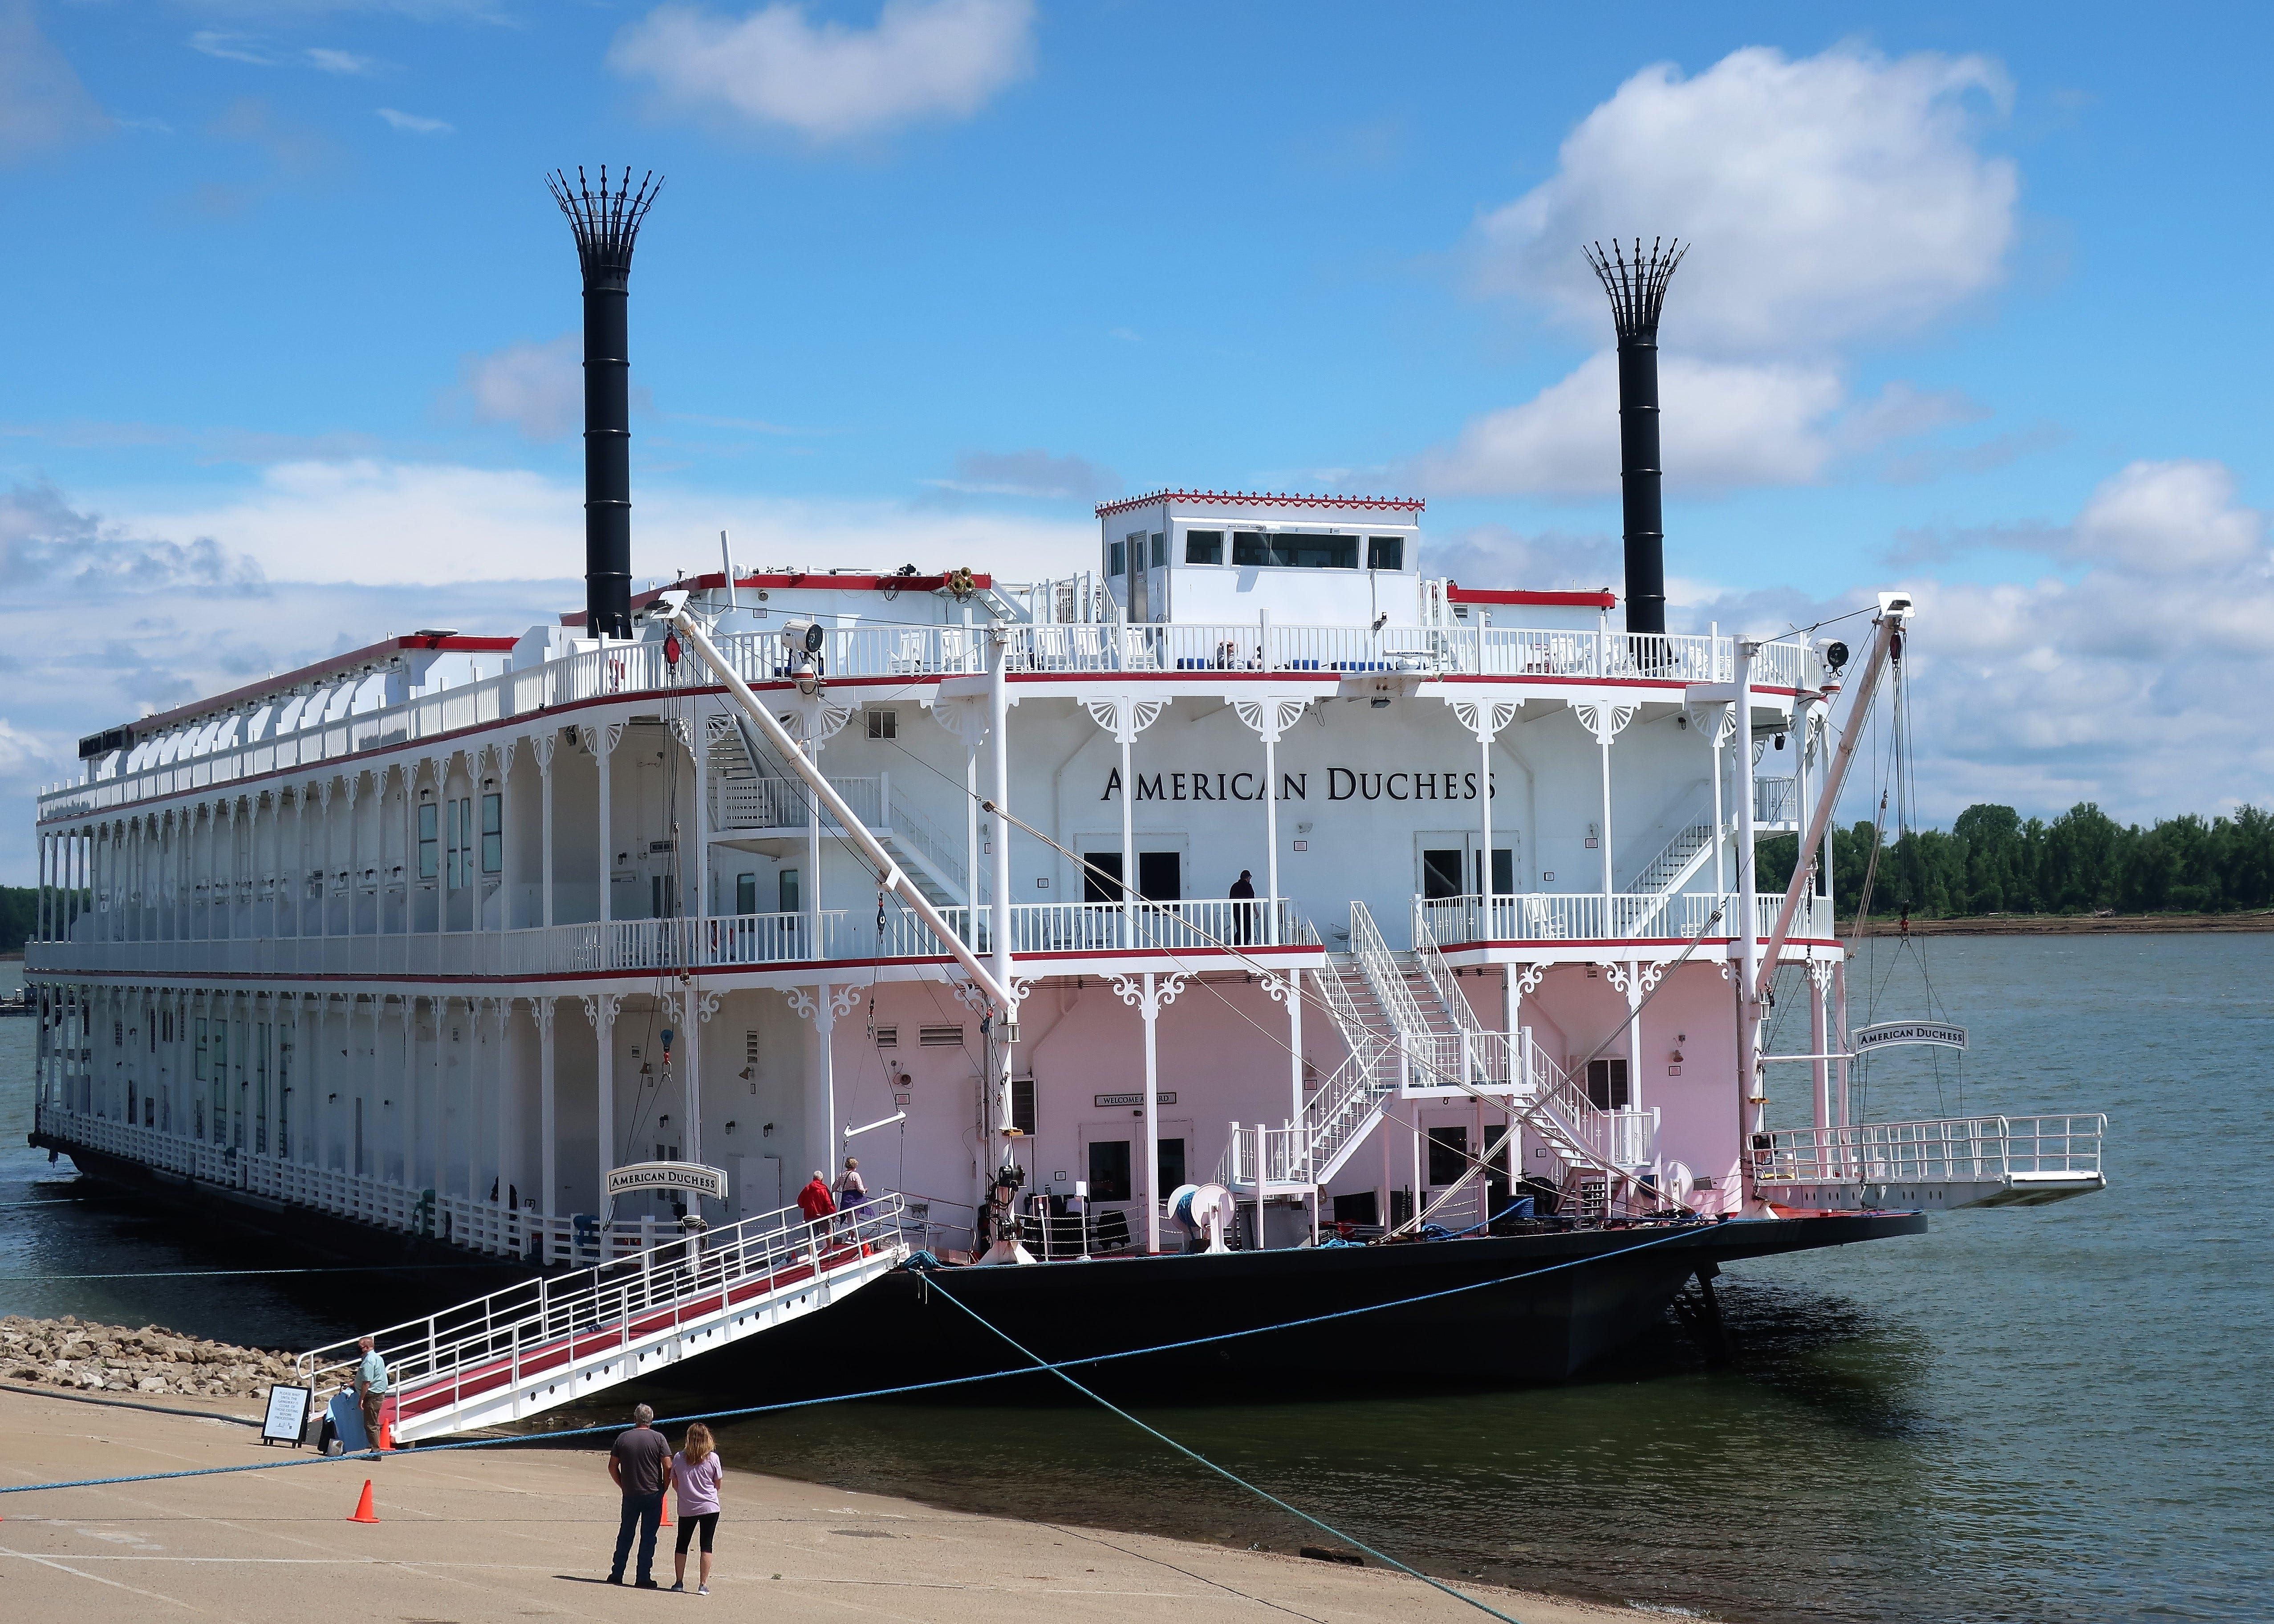 Mississippi River cruises return: Here s what it s like to be on board as COVID-19 recedes